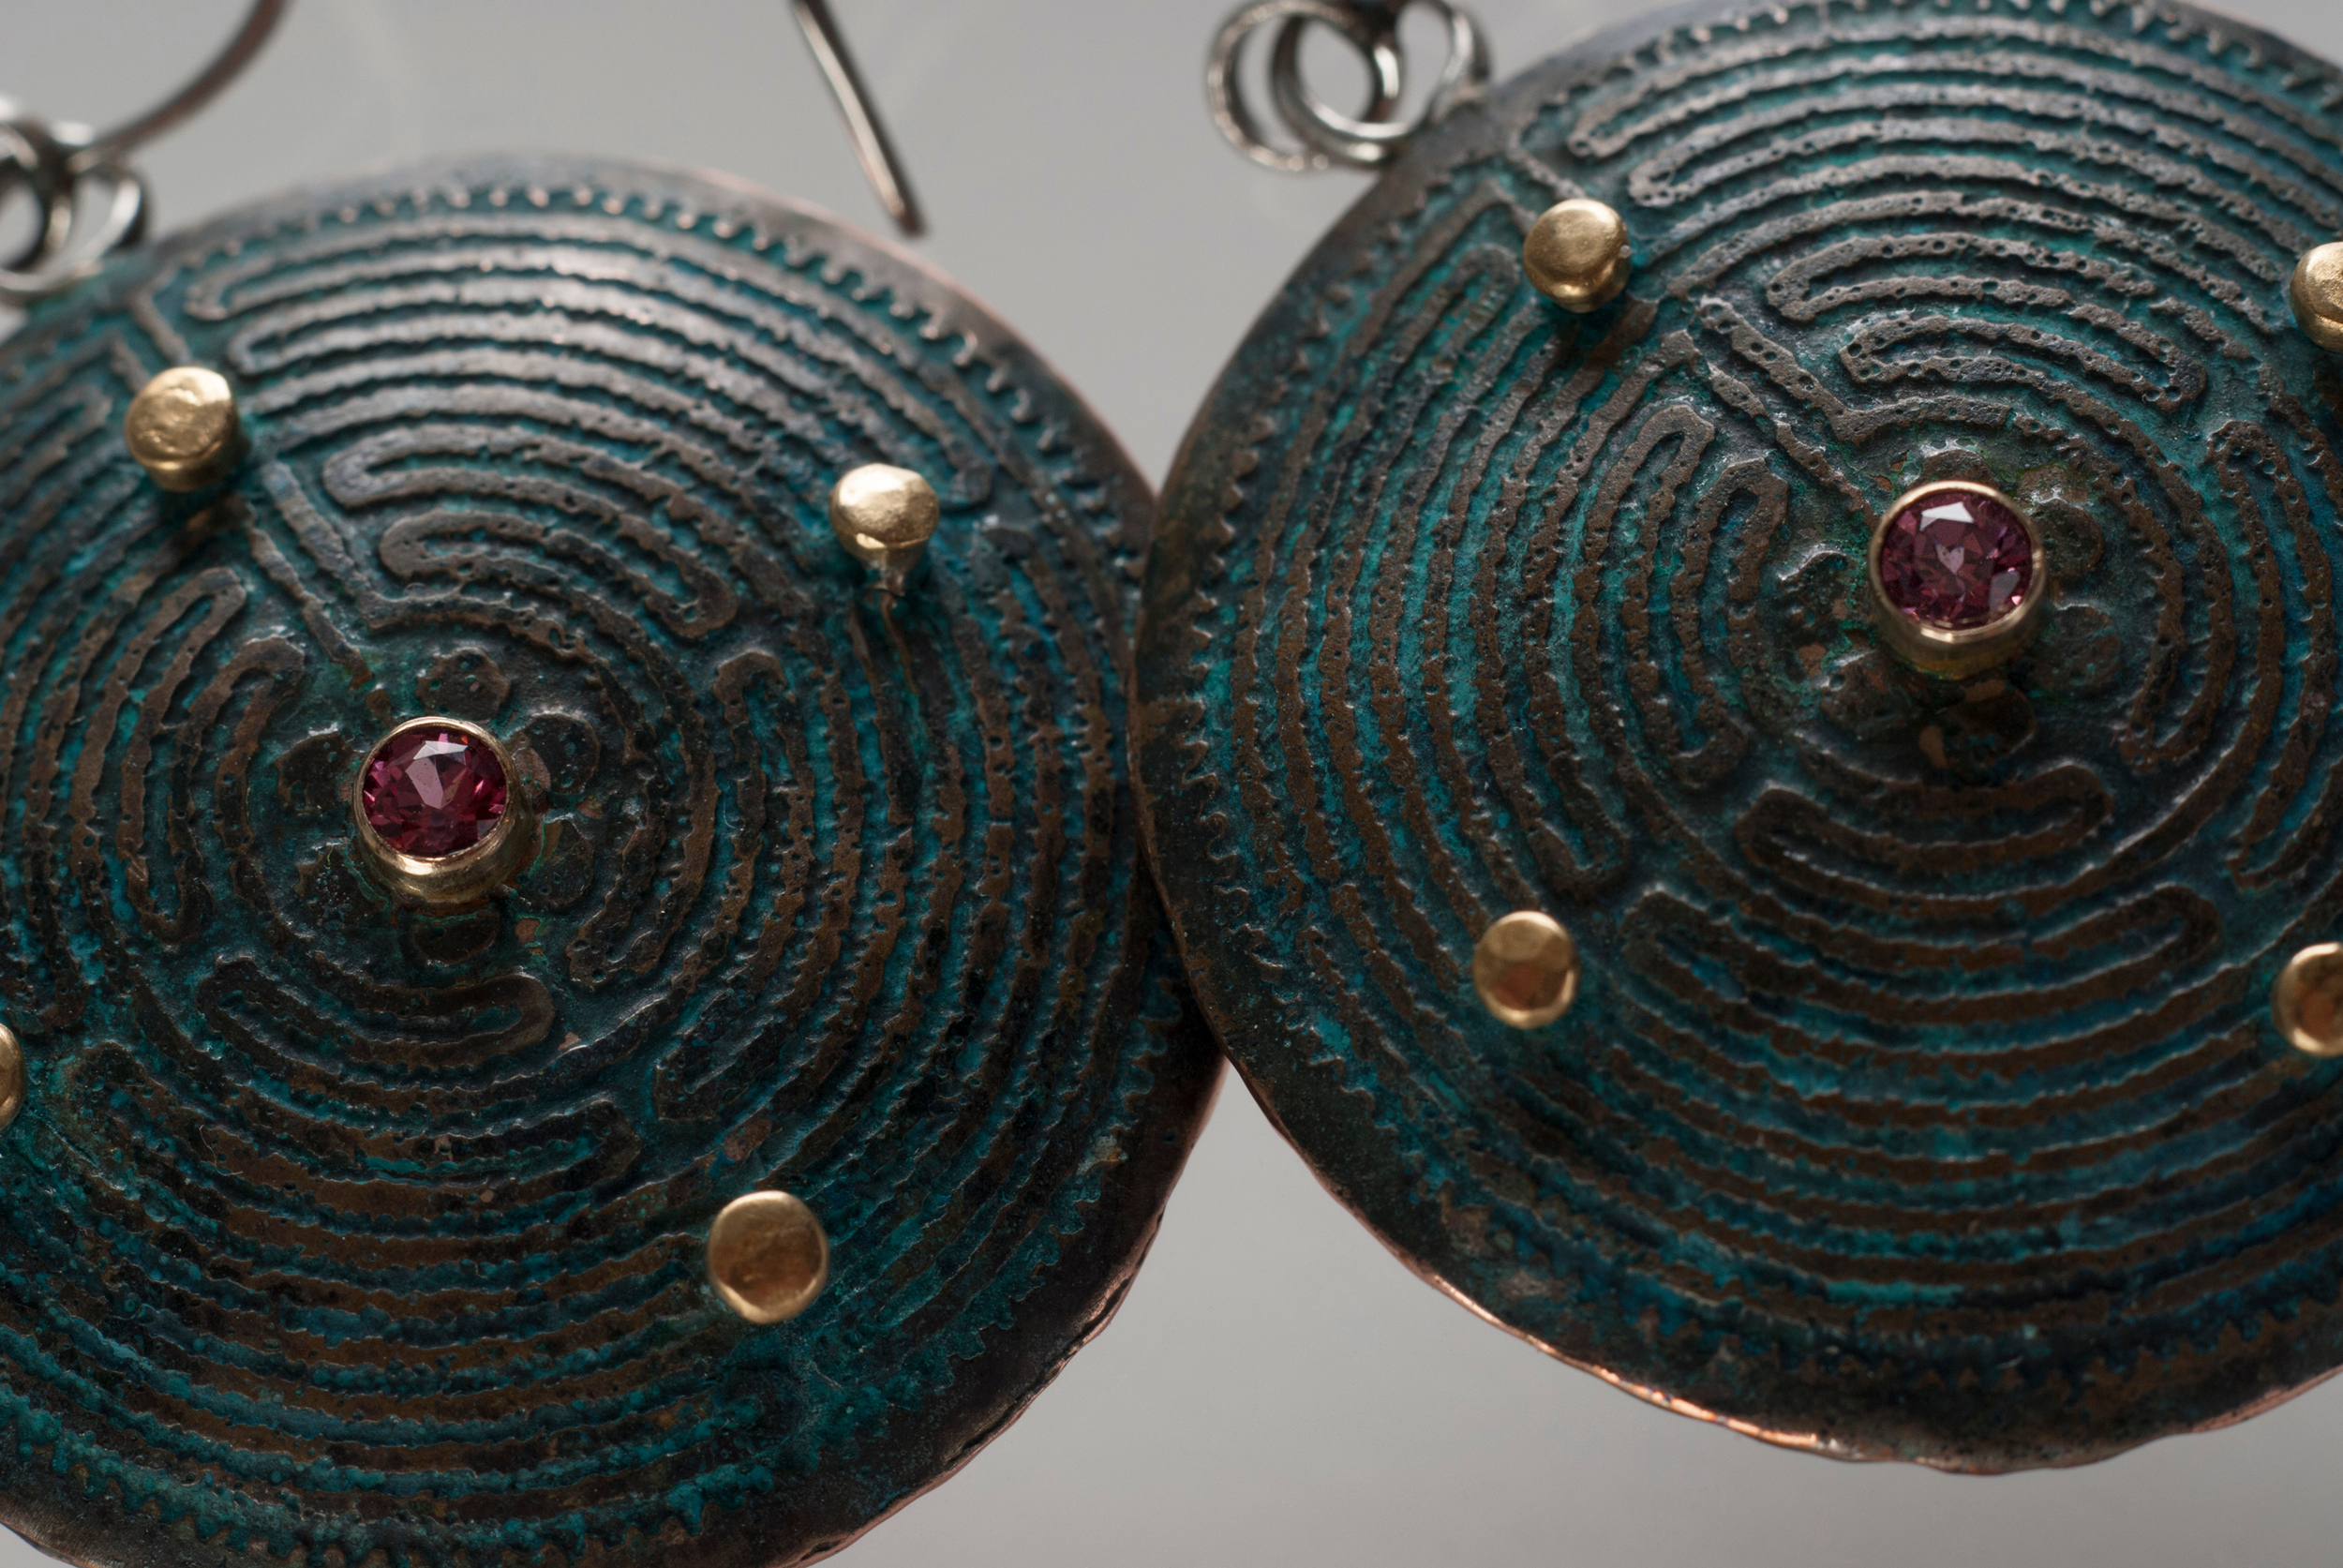 Etched shibuichi earrings with 18kt gold and garnets.